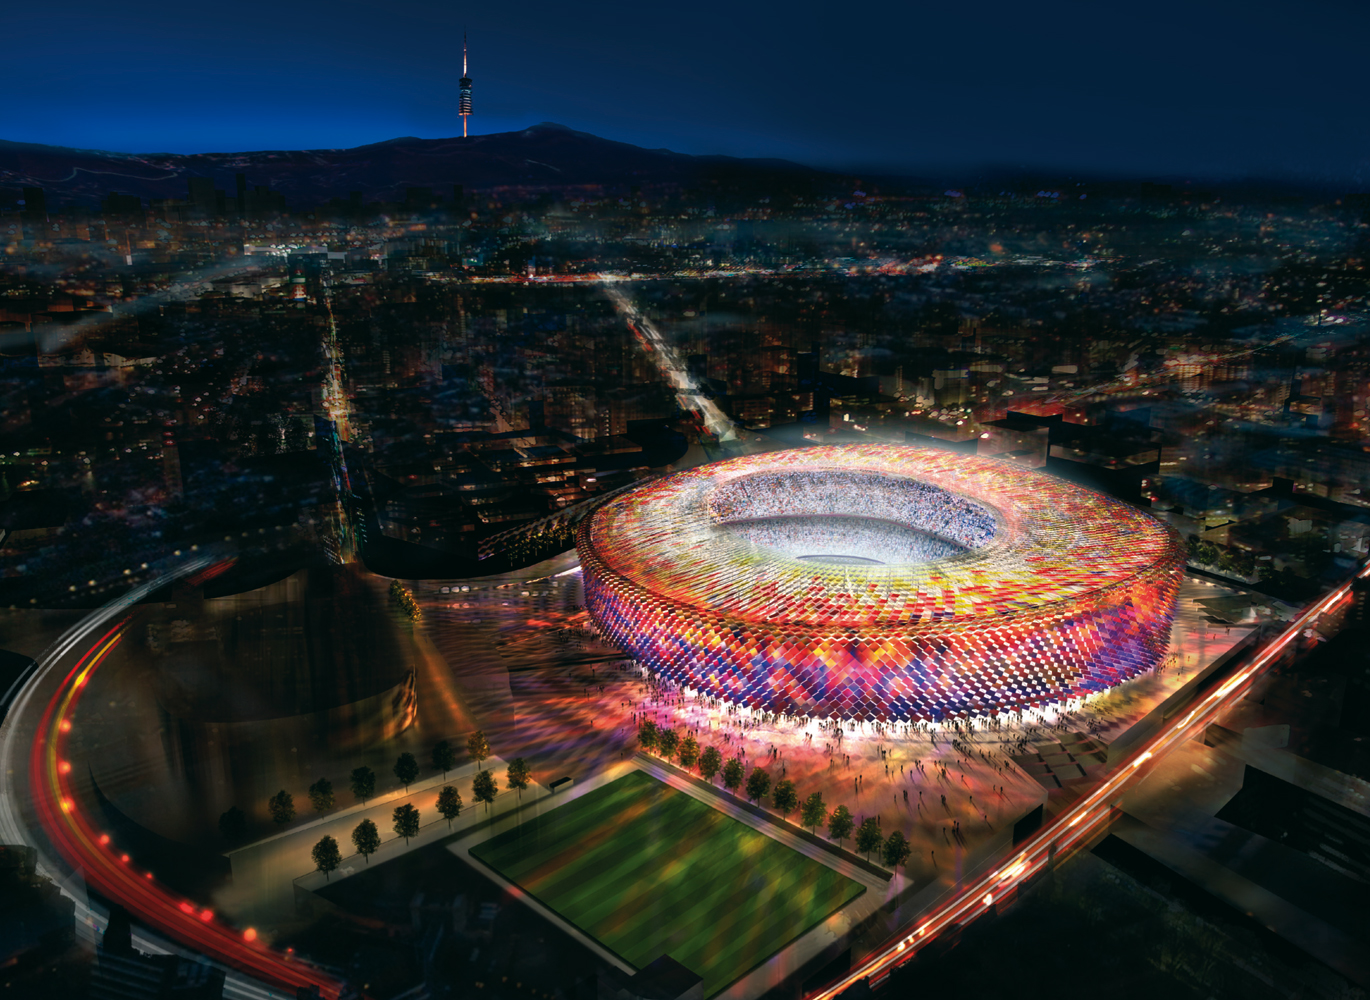 http://2.bp.blogspot.com/-nzRi_dKetnI/URcxAXopBPI/AAAAAAAAIaY/VjIORCiI6FE/s1600/camp-nou-fc-barcelona-fans-spain-catalonia-11th-largest-world-uefa-olympics-night-timetv.jpg